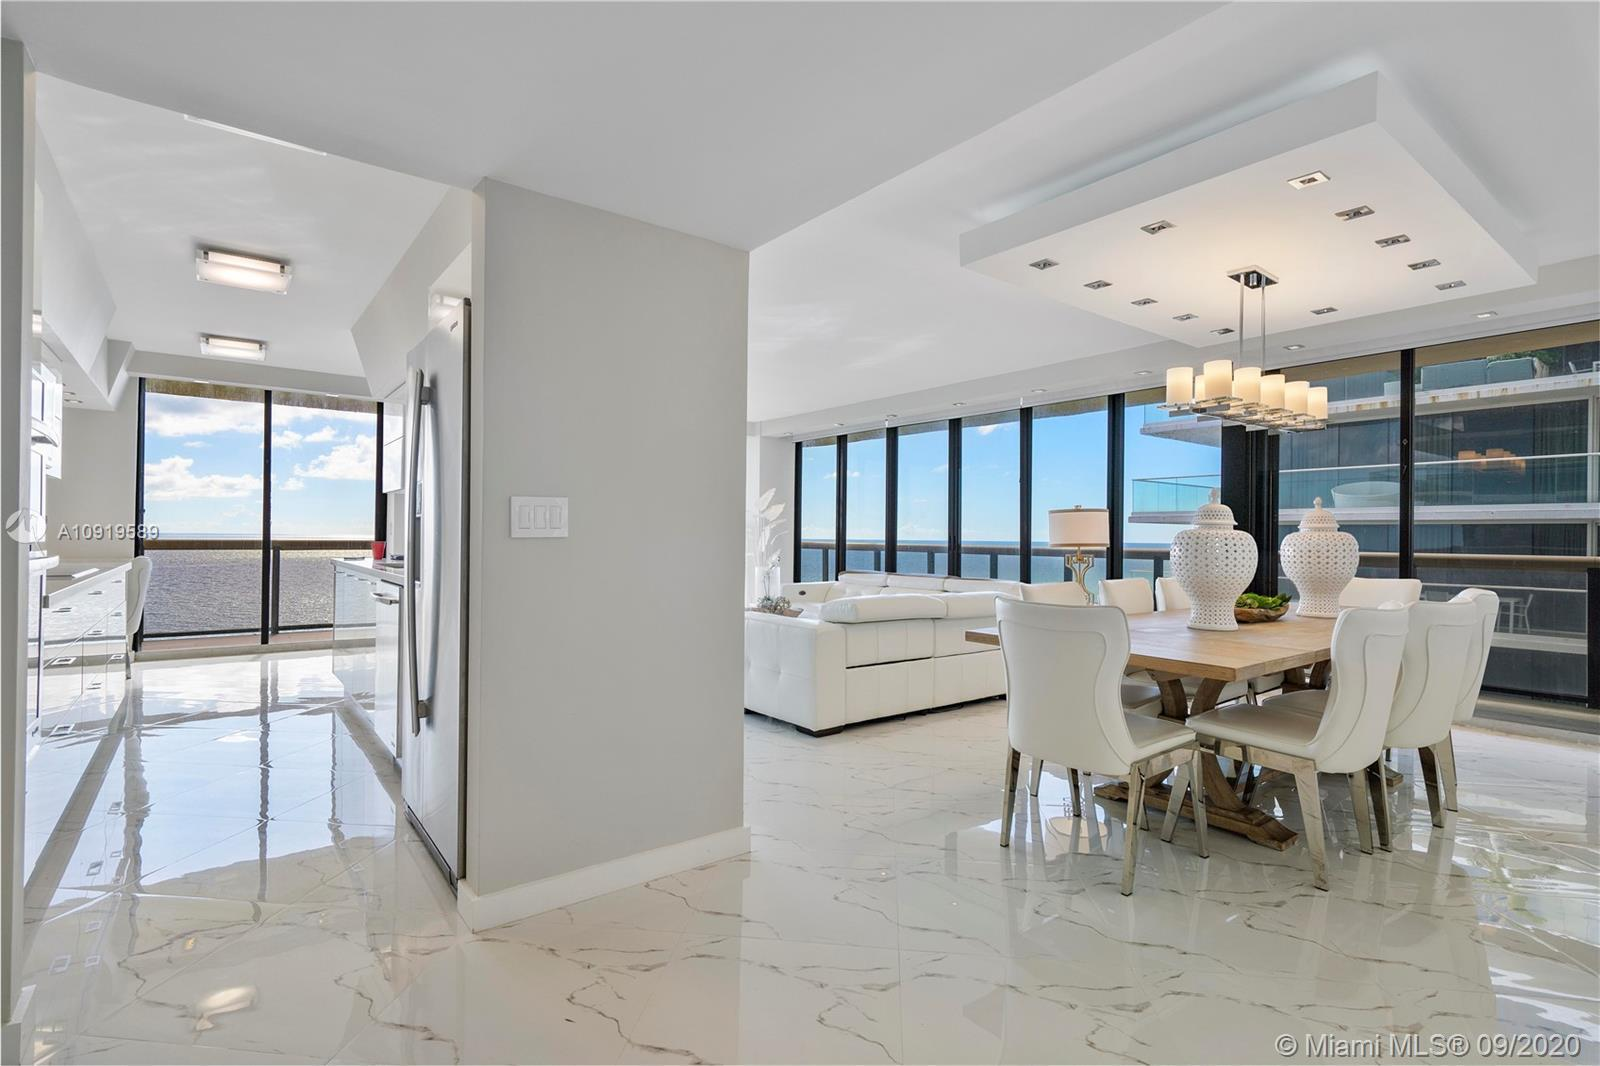 Beautiful Ocean Front Condo in Surfside. 2 Bedrooms with Ocean Views. Completely remodeled!!! Brand